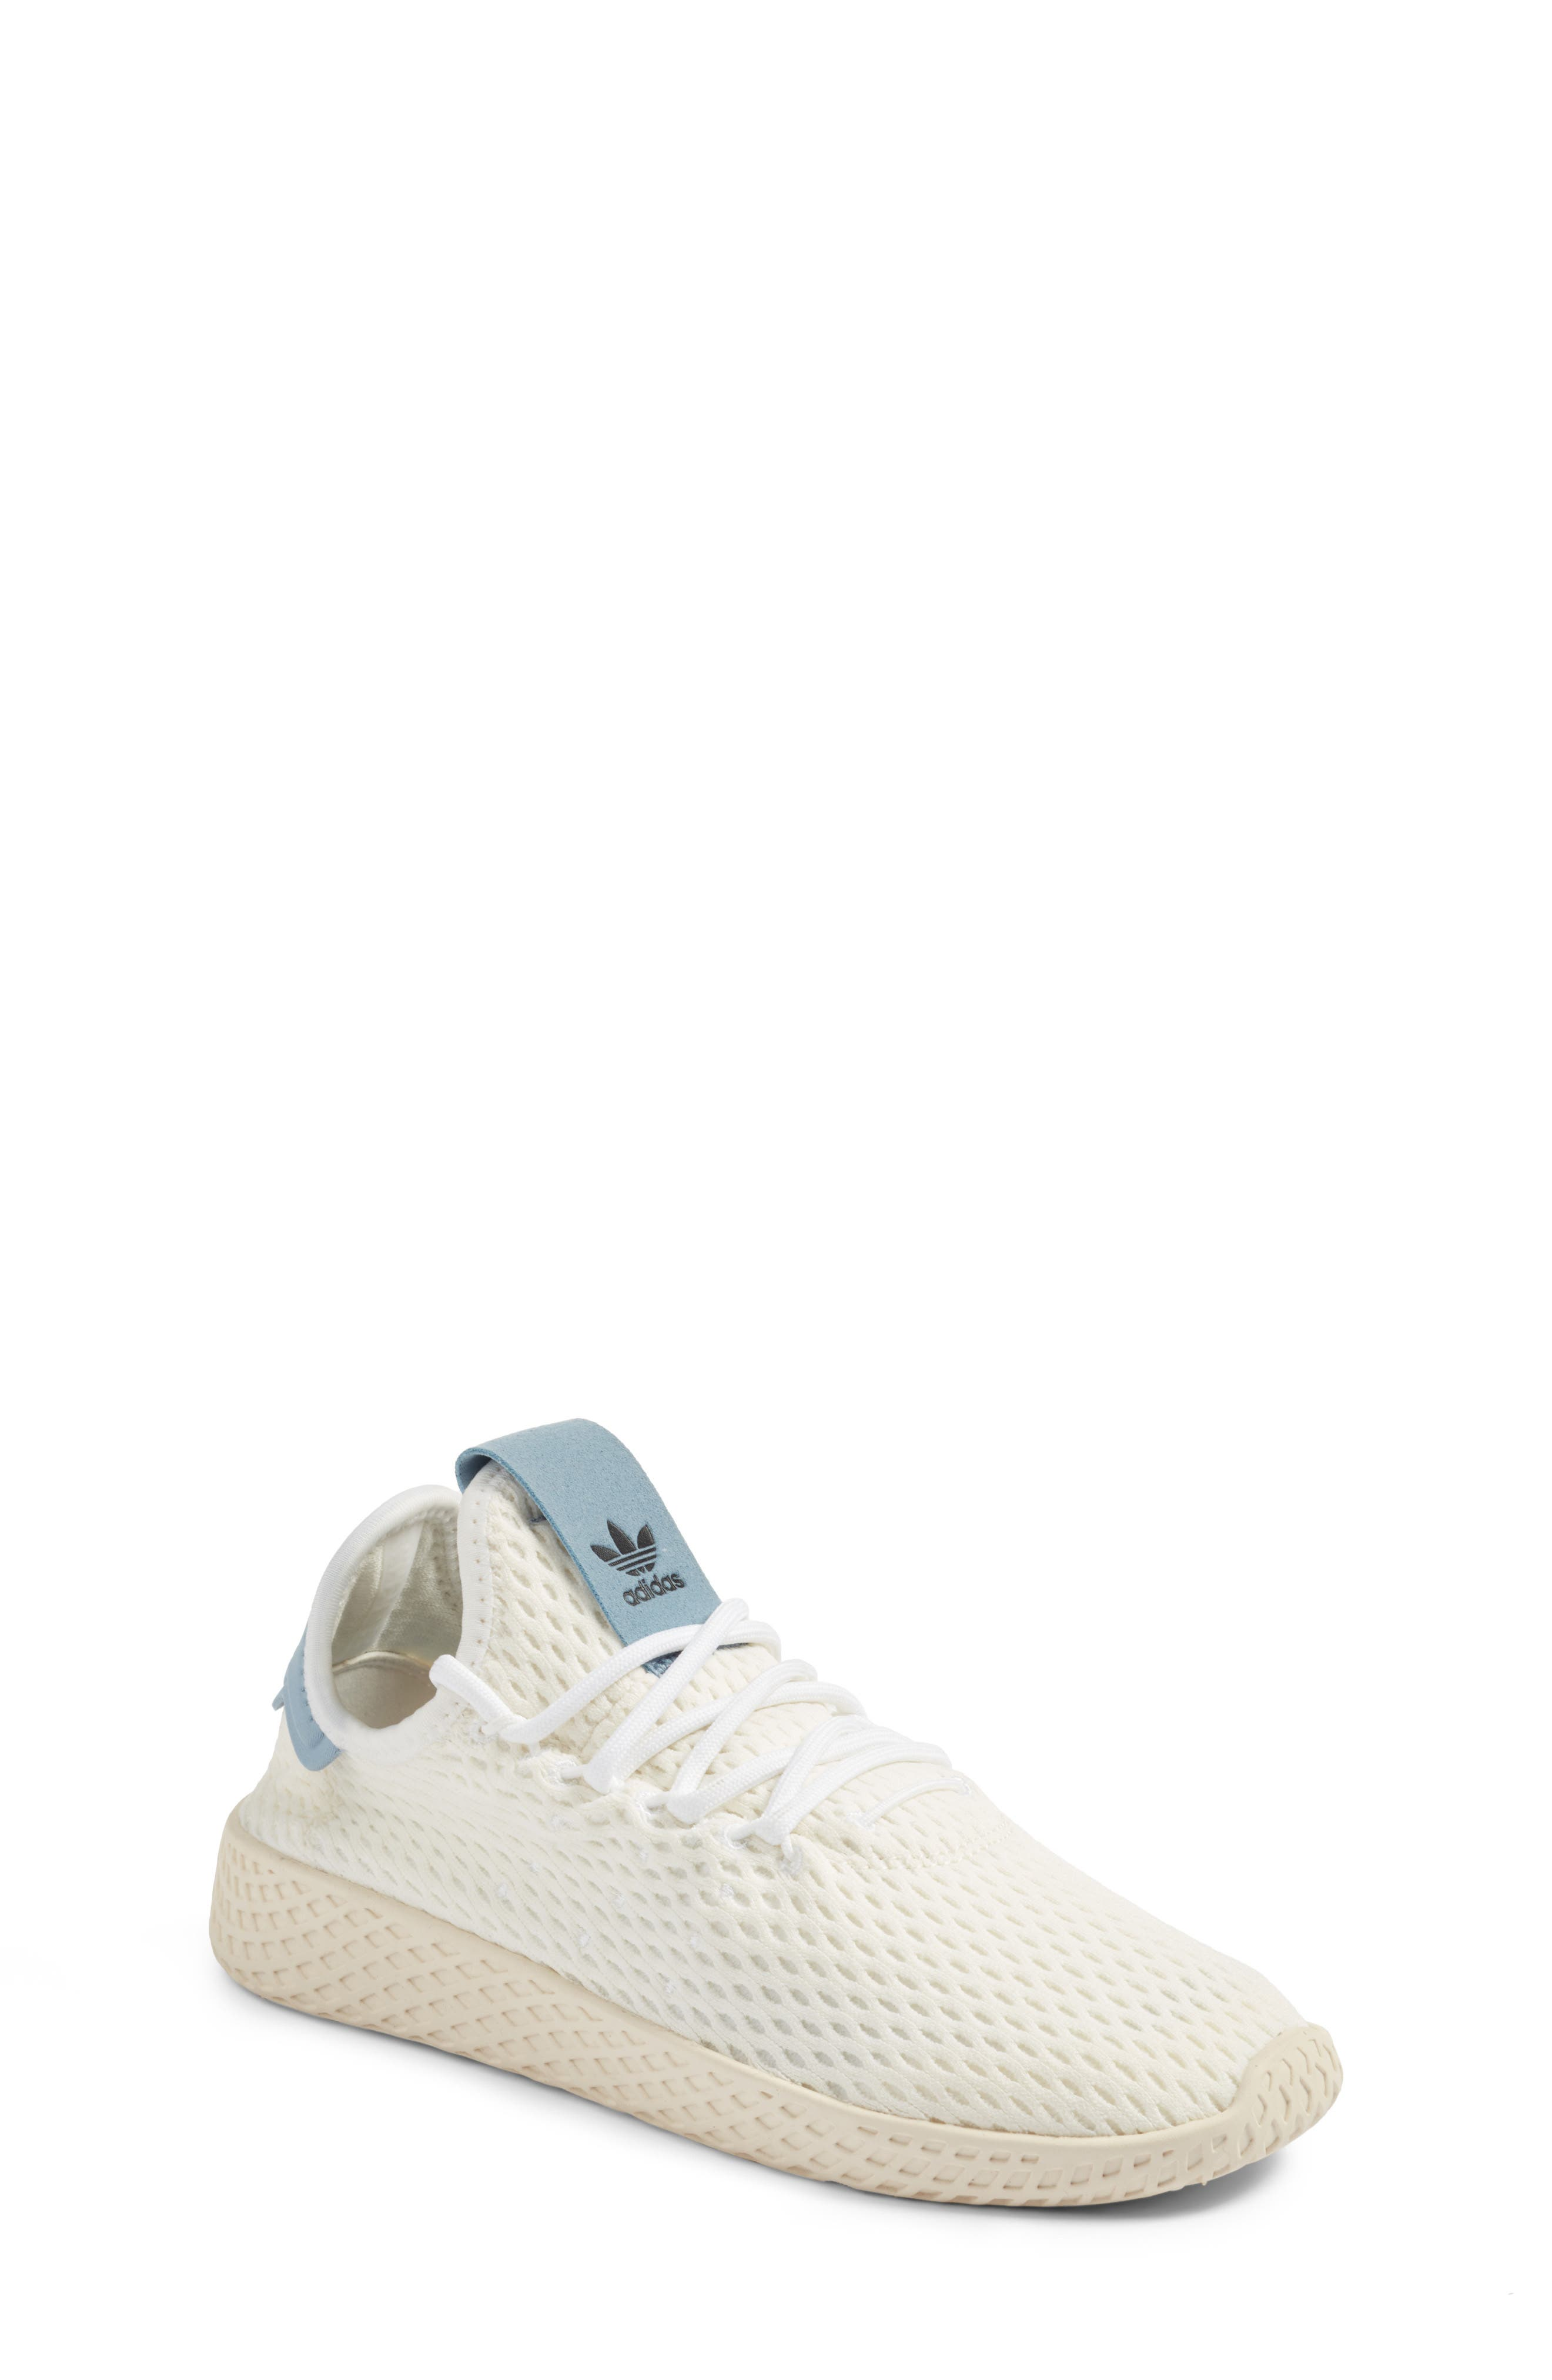 Originals x Pharrell Williams The Summers Mesh Sneaker,                             Main thumbnail 1, color,                             Footwear White/ Tactile Blue